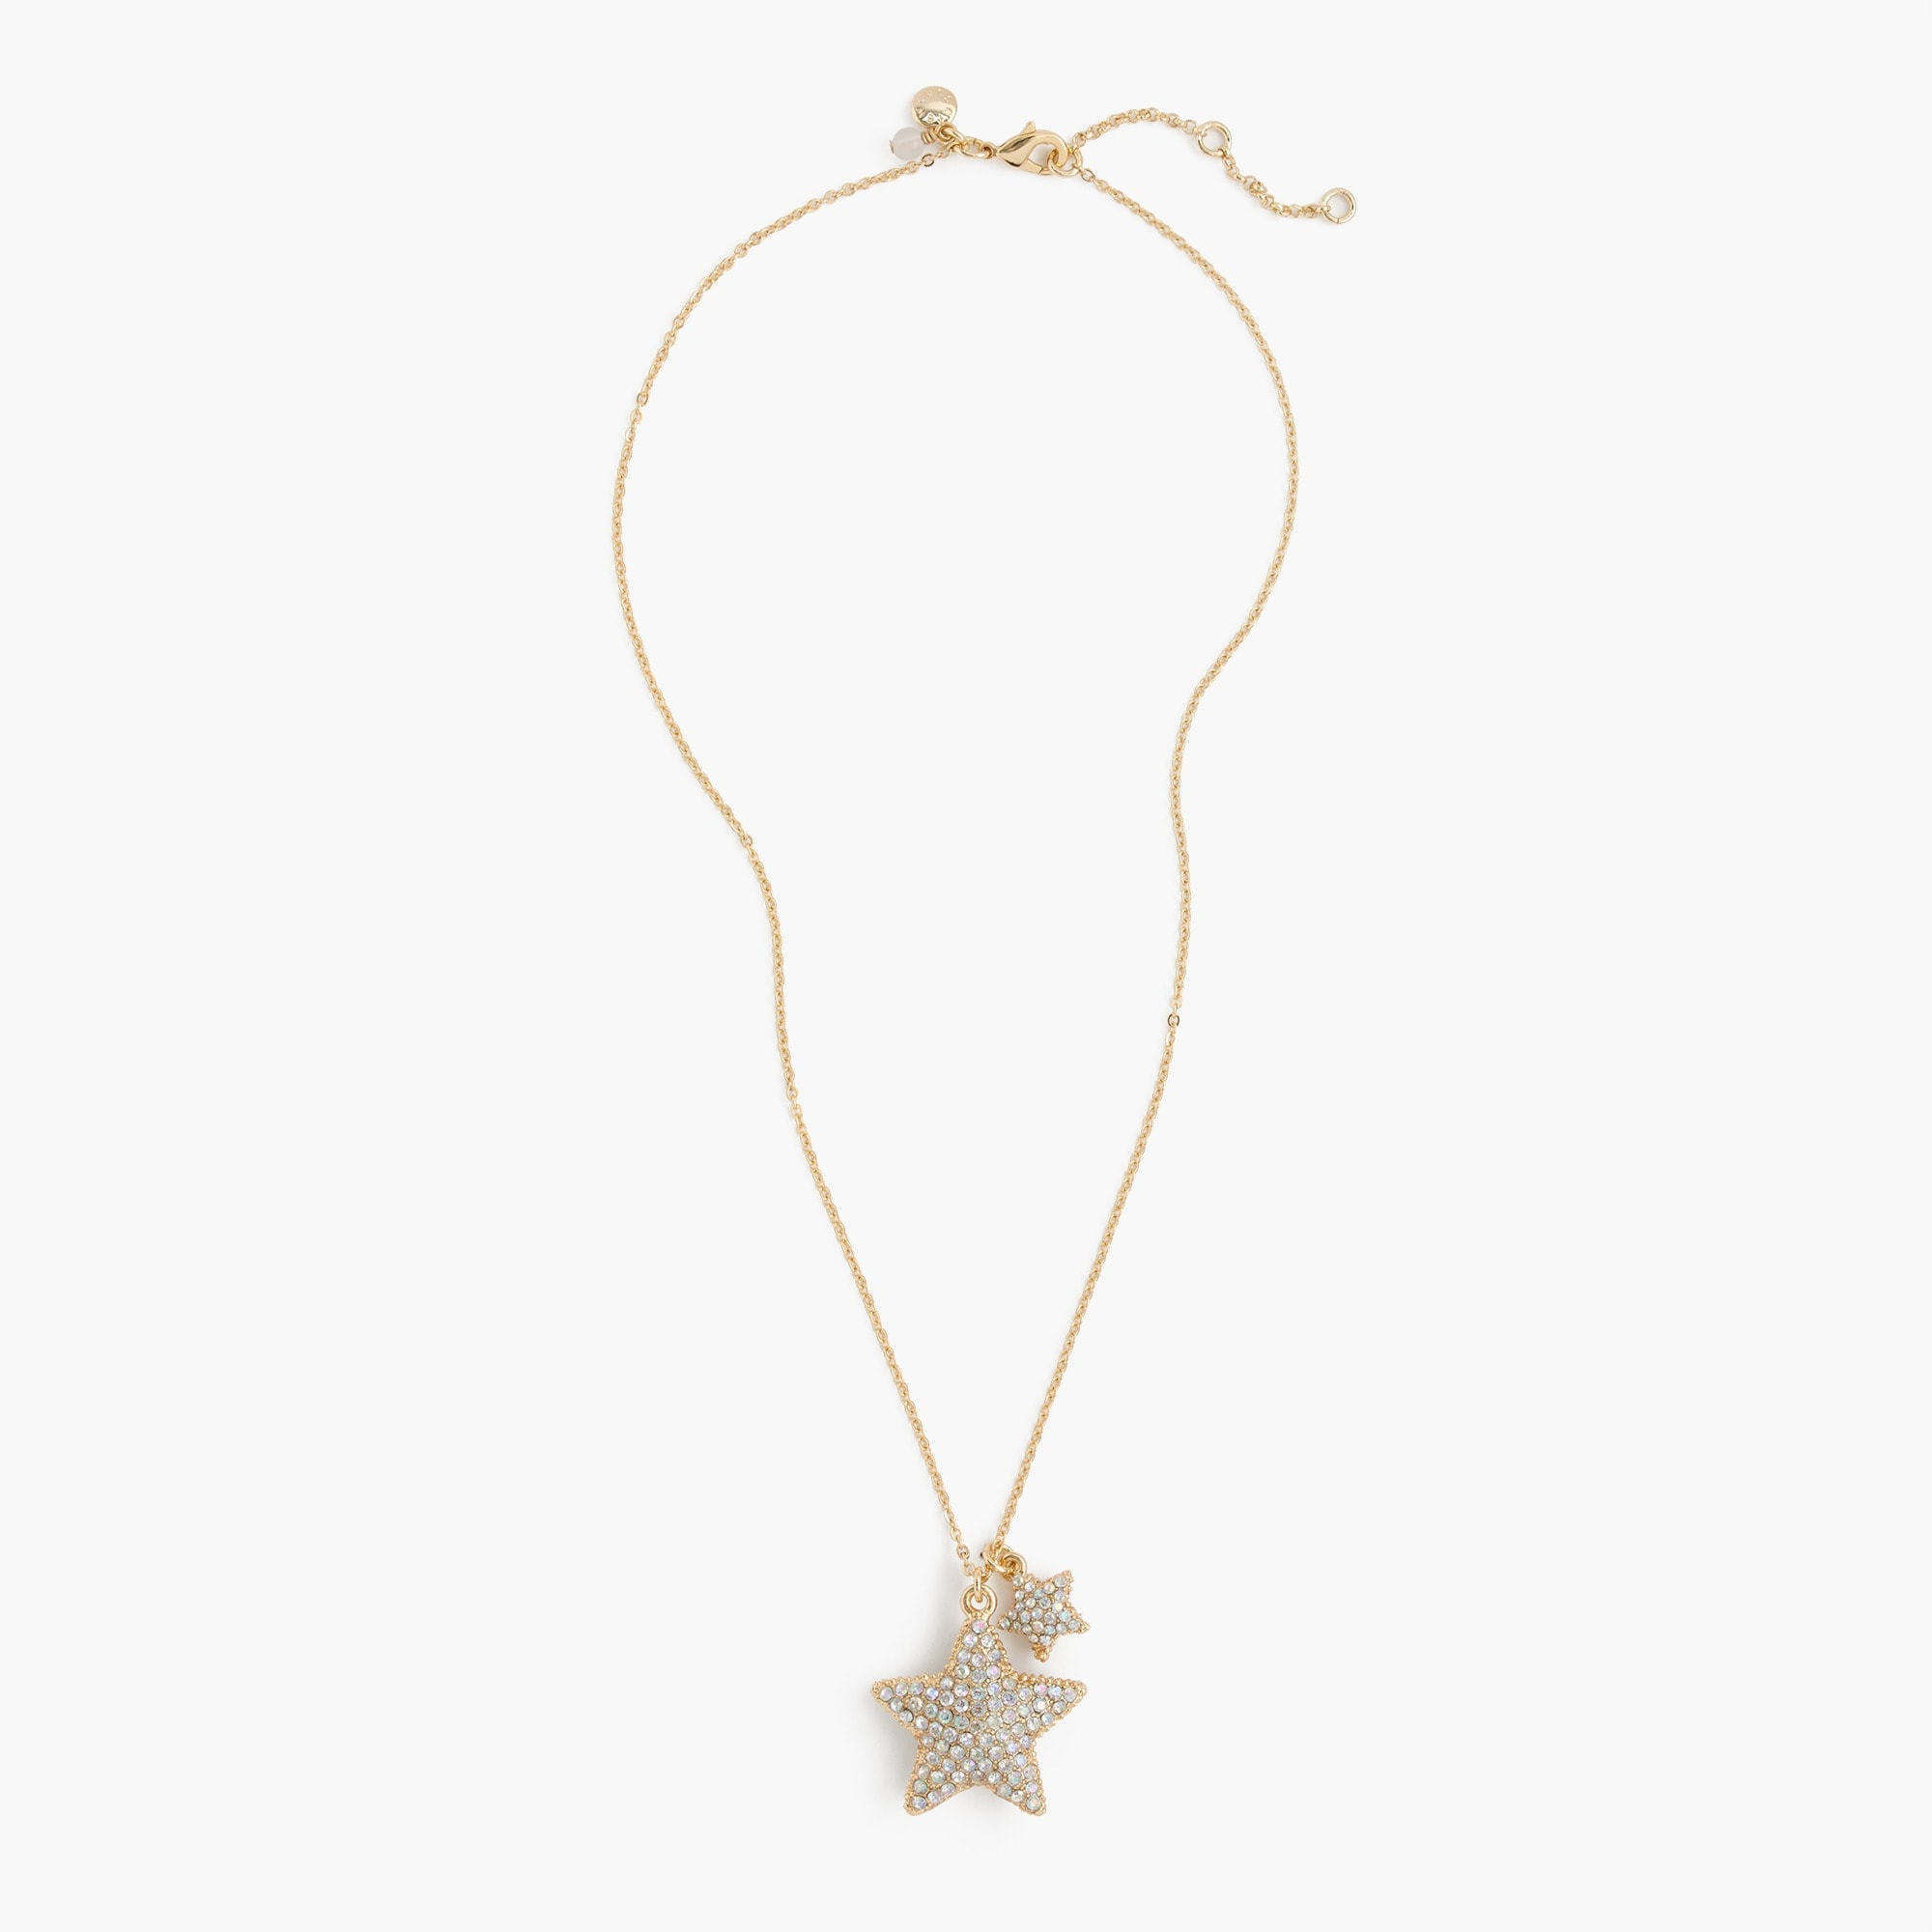 girls' pavé star pendant necklace : girl jewelry